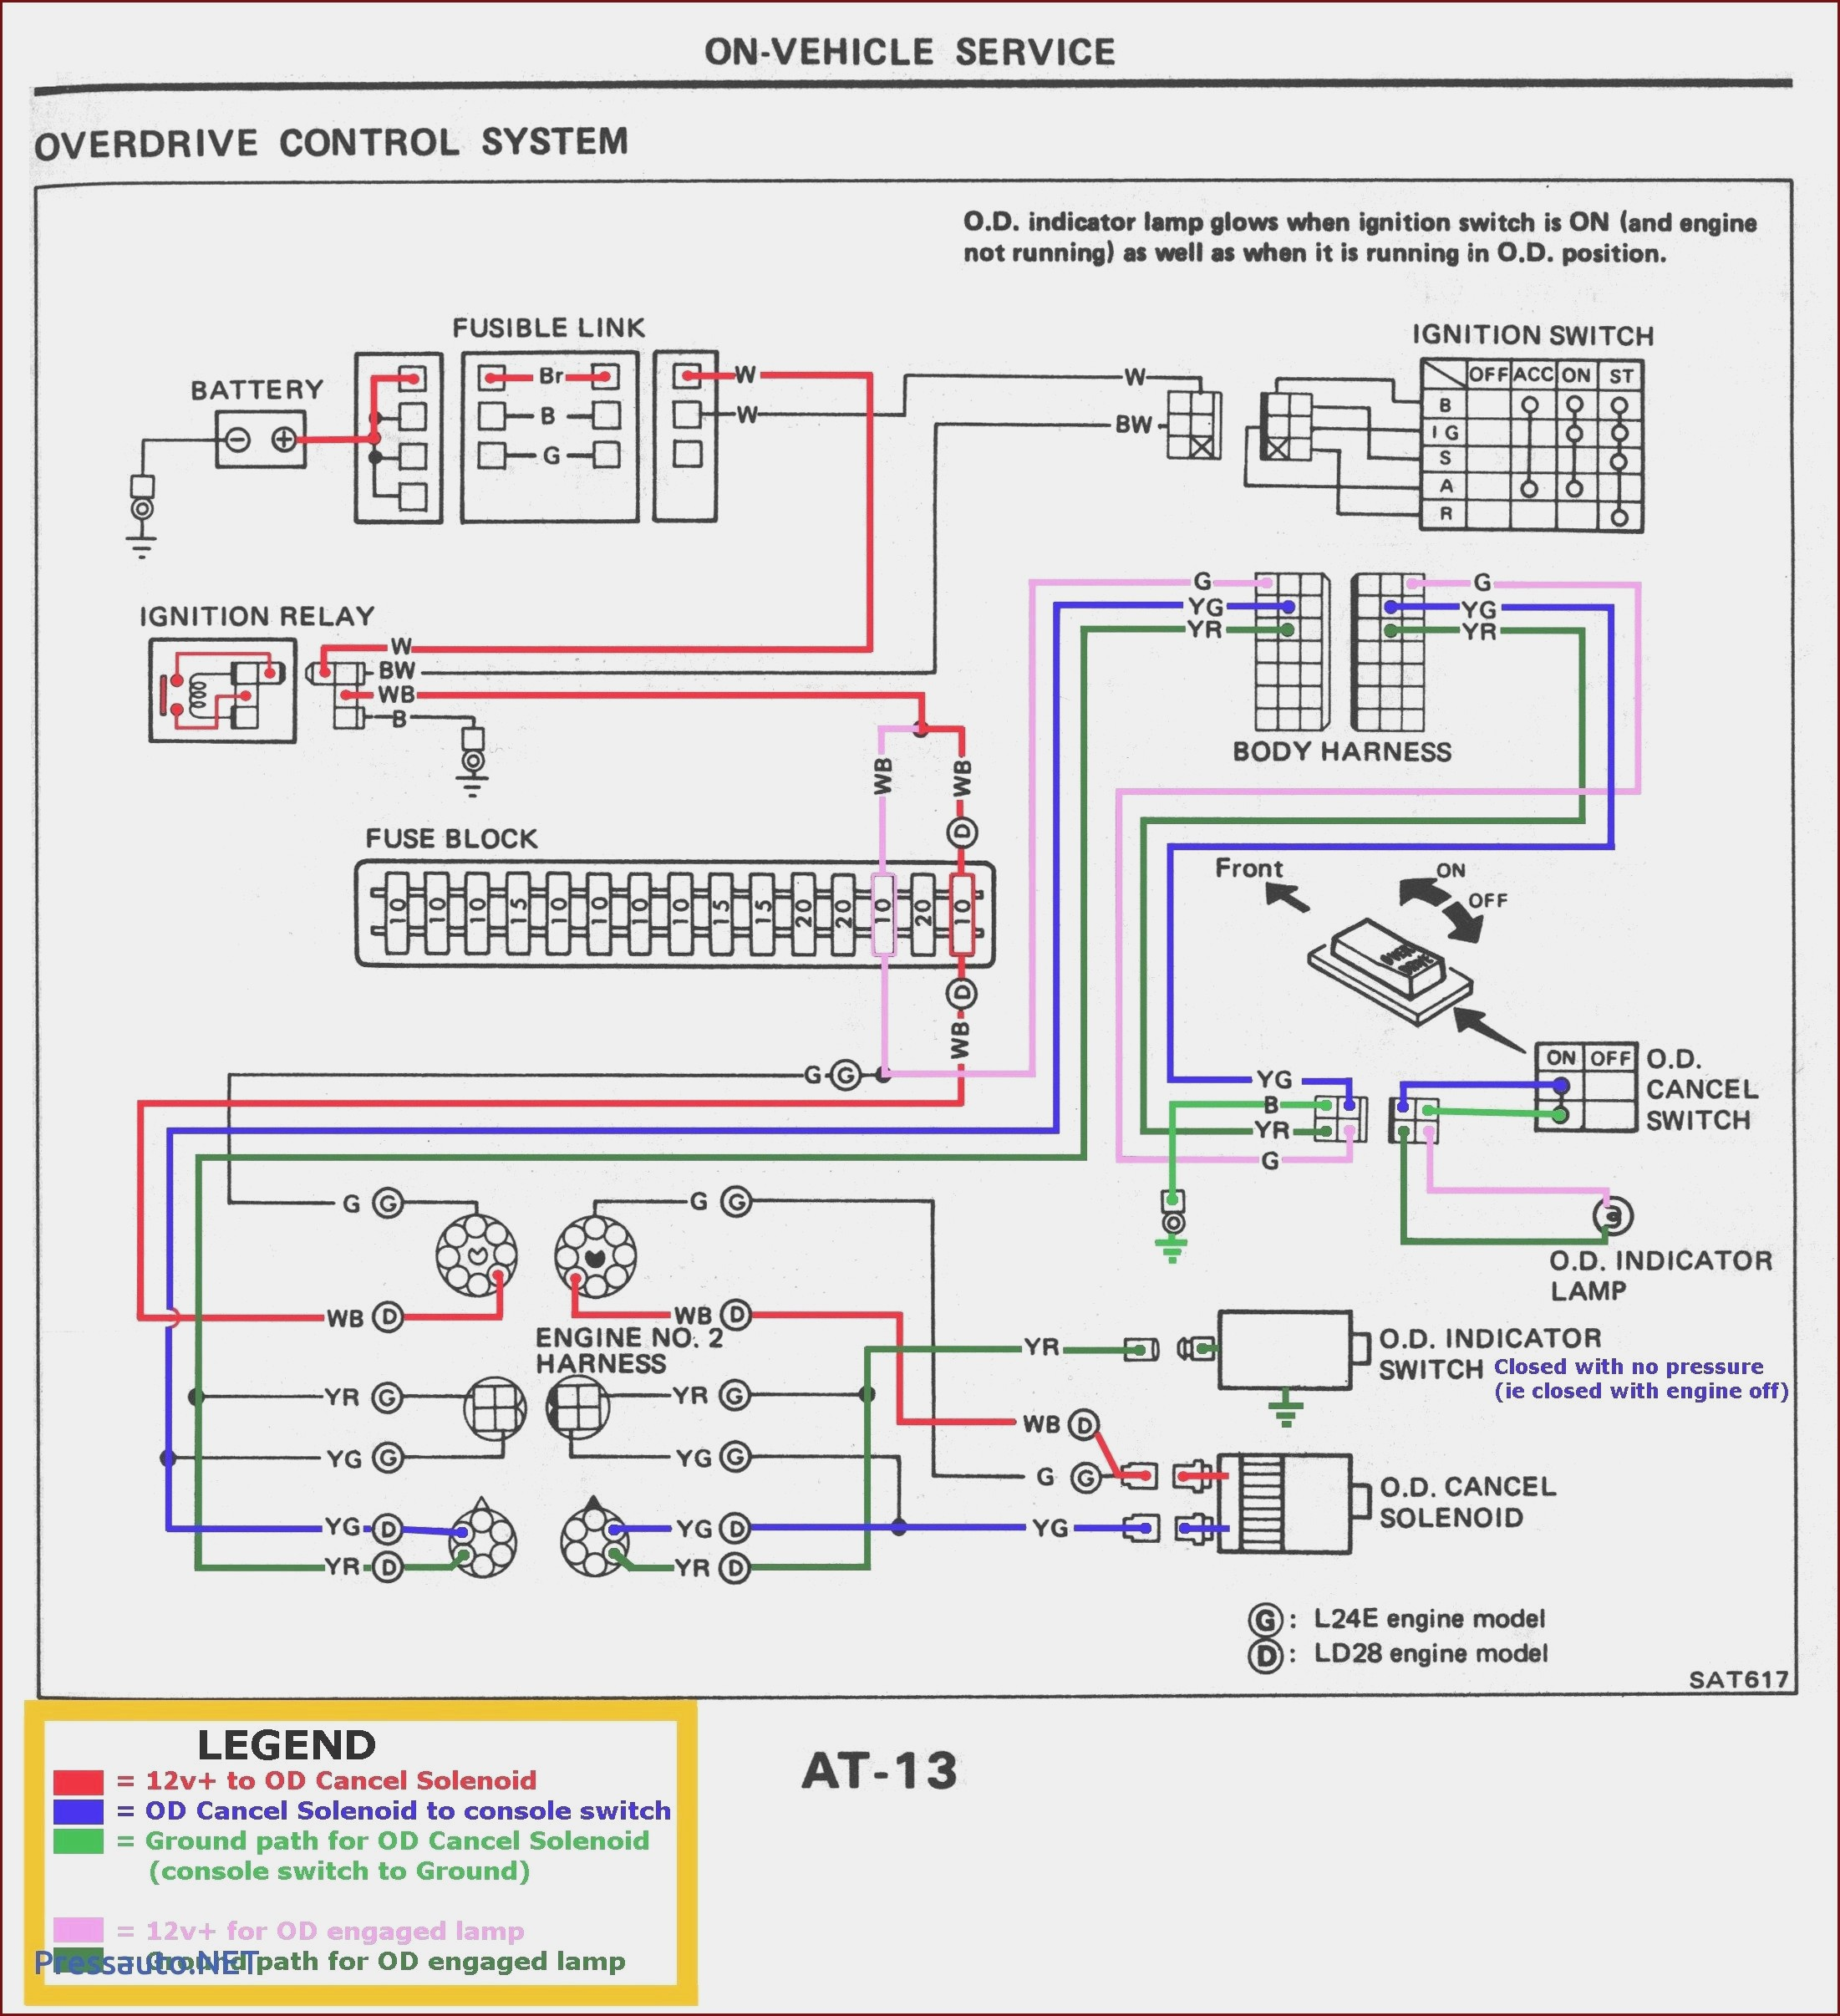 Kia Sedona Wiring Diagram Ebfe7 Ac Start Relay Wiring Diagram Of Kia Sedona Wiring Diagram F2339 Wire Diagram Allis Chalmers B12